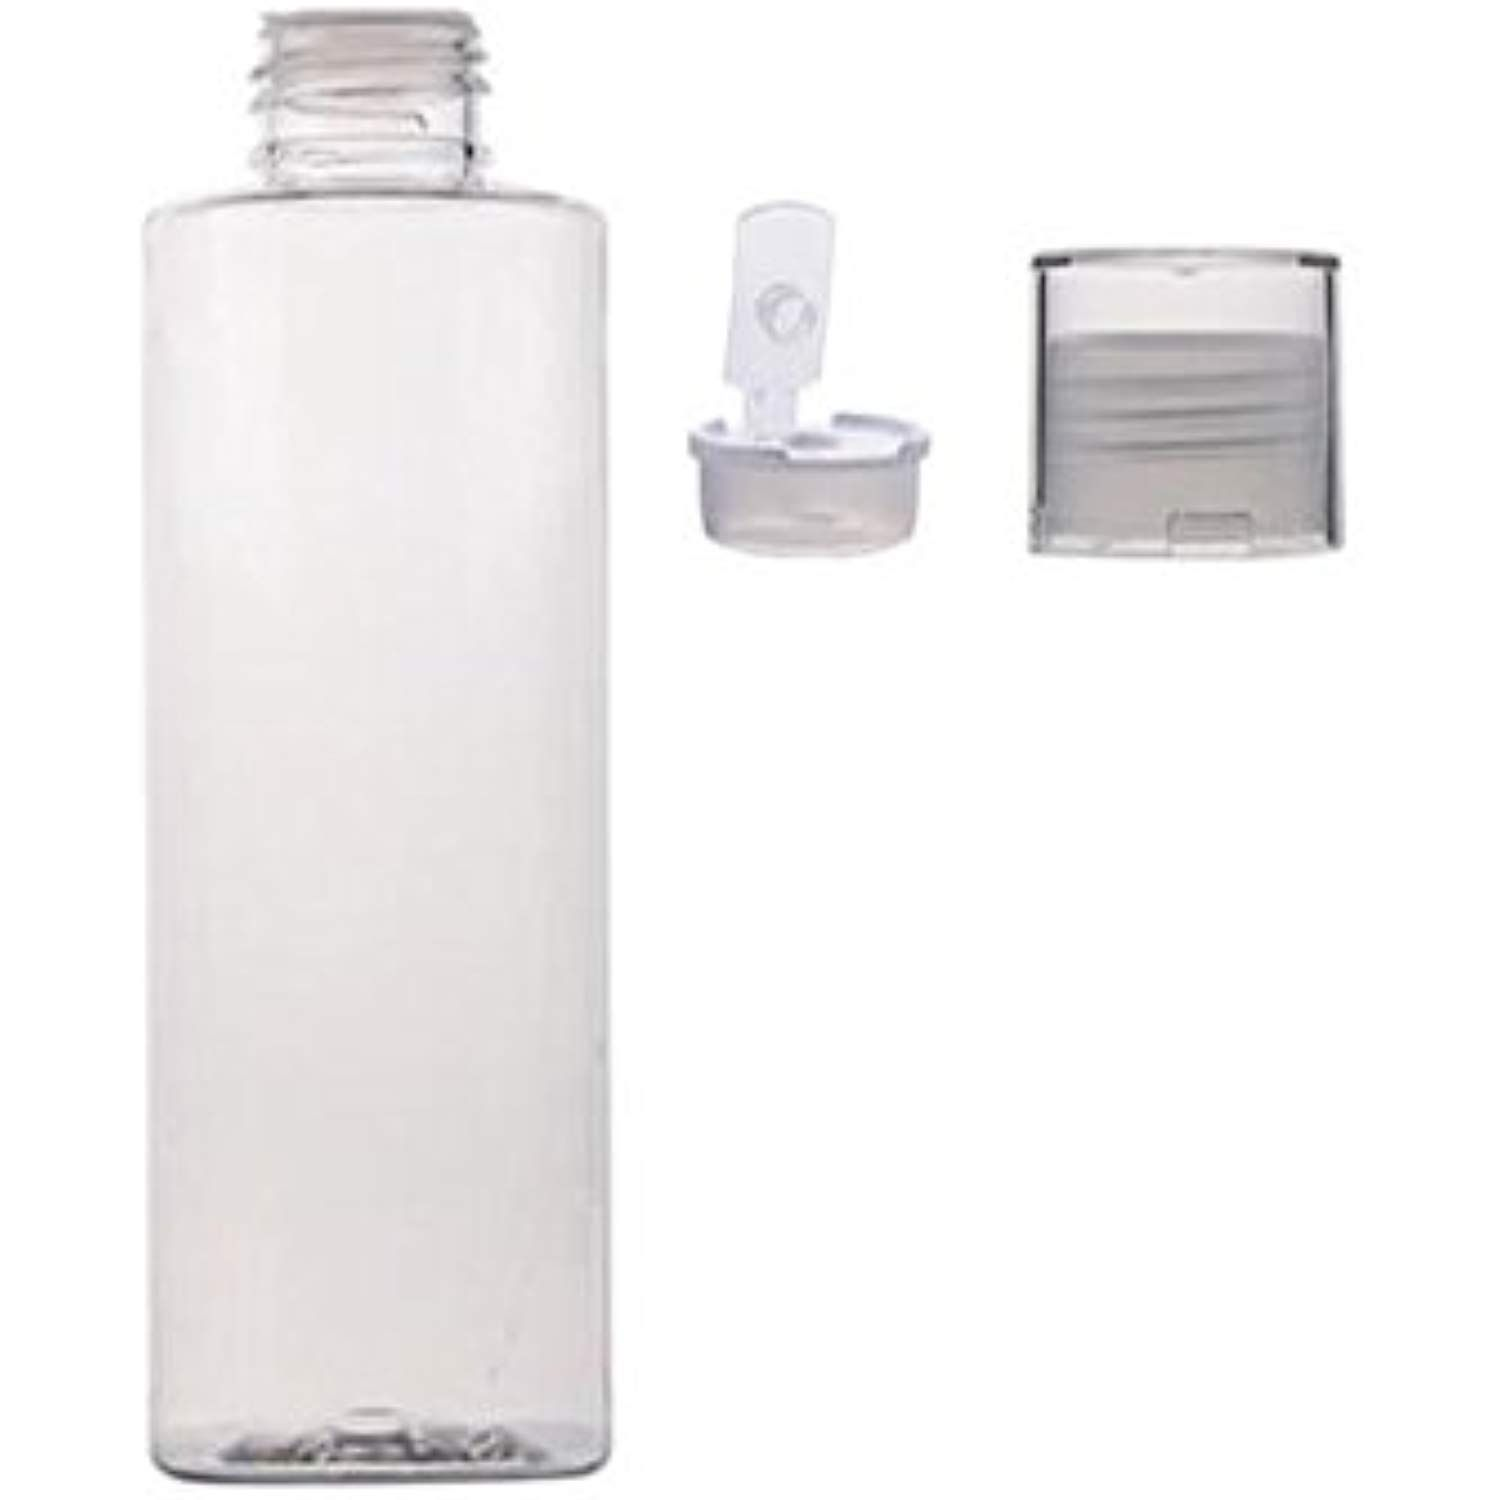 4c20783bc5fe 3PCS 150ml/5oz Empty Clear Refillable Plastic Toner Lotion Bottle ...